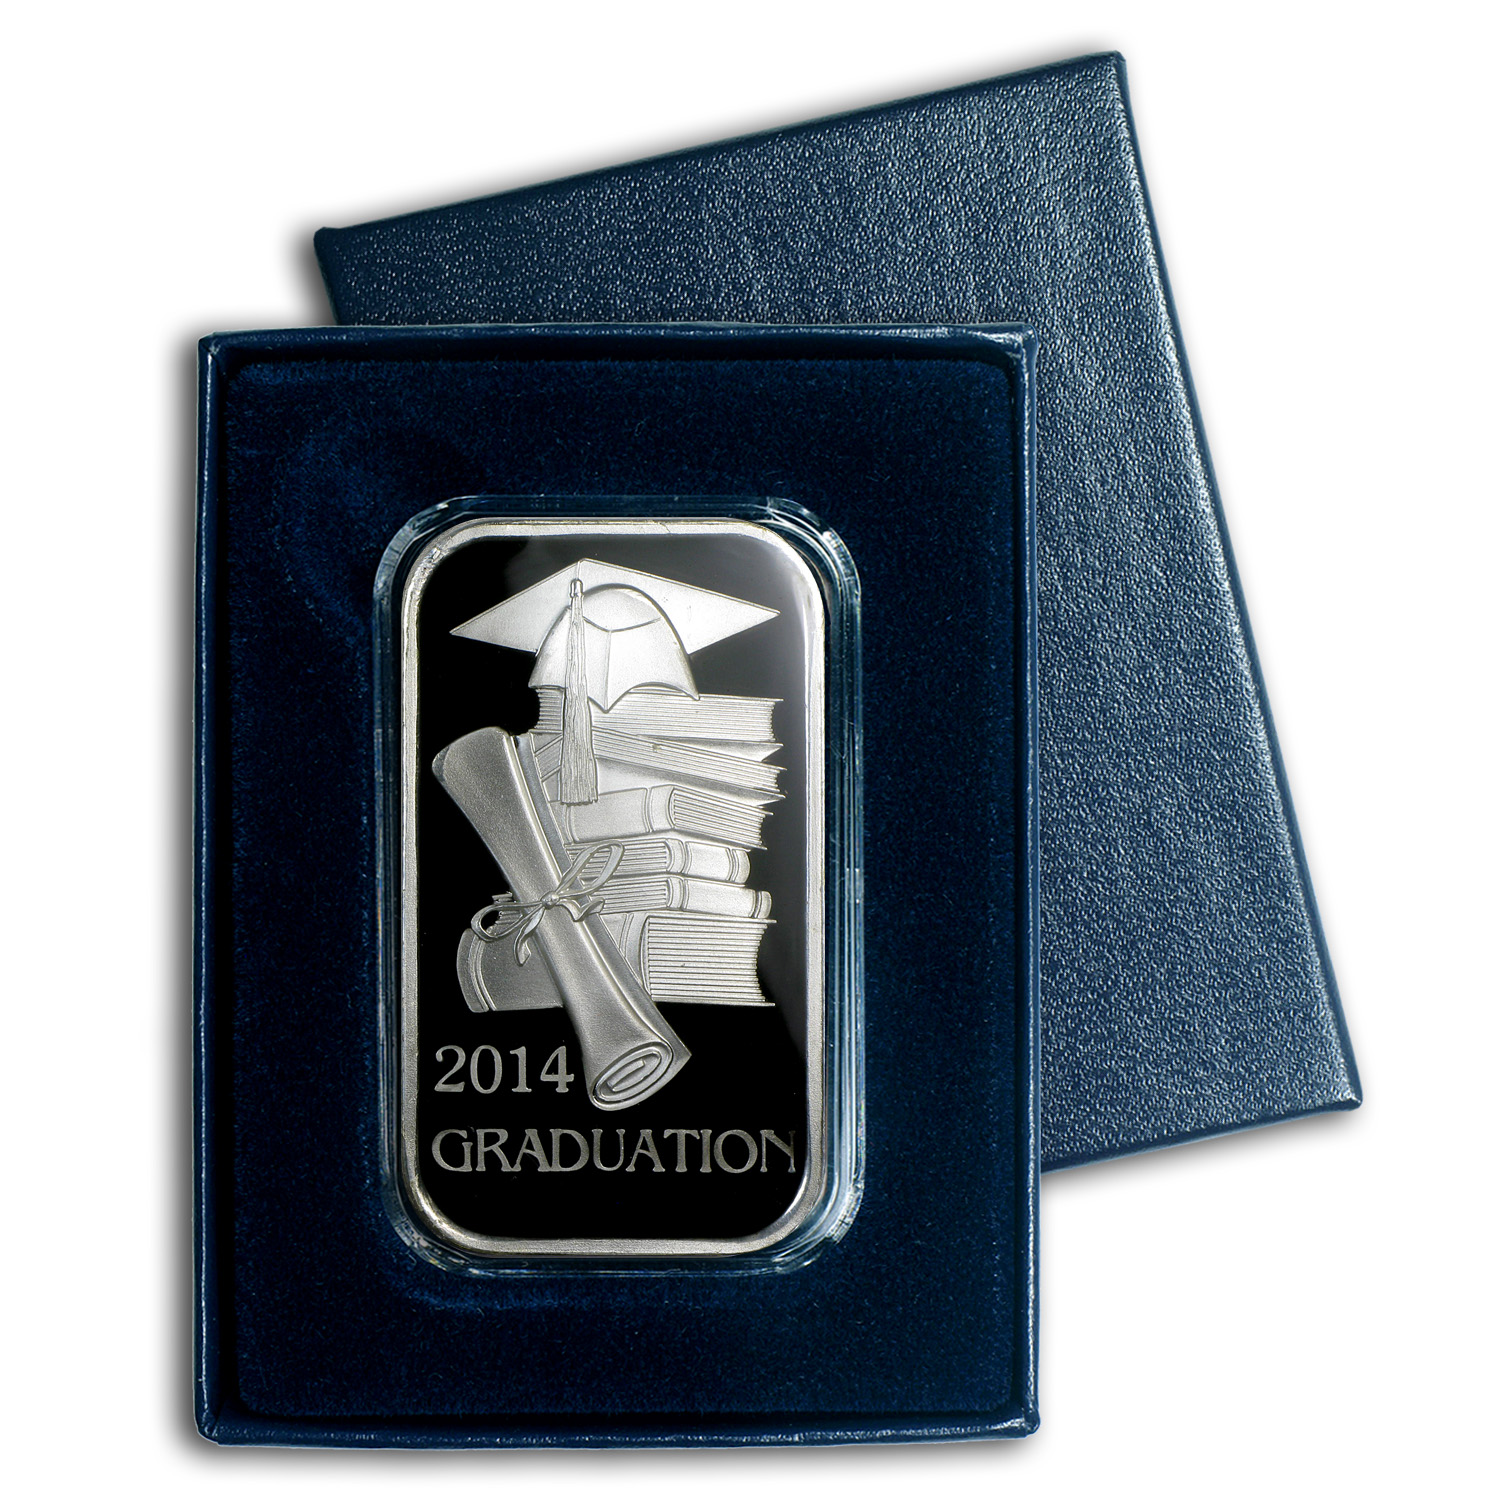 1 oz Silver Bars - 2014 Graduation Enameled (w/Box & Capsule)